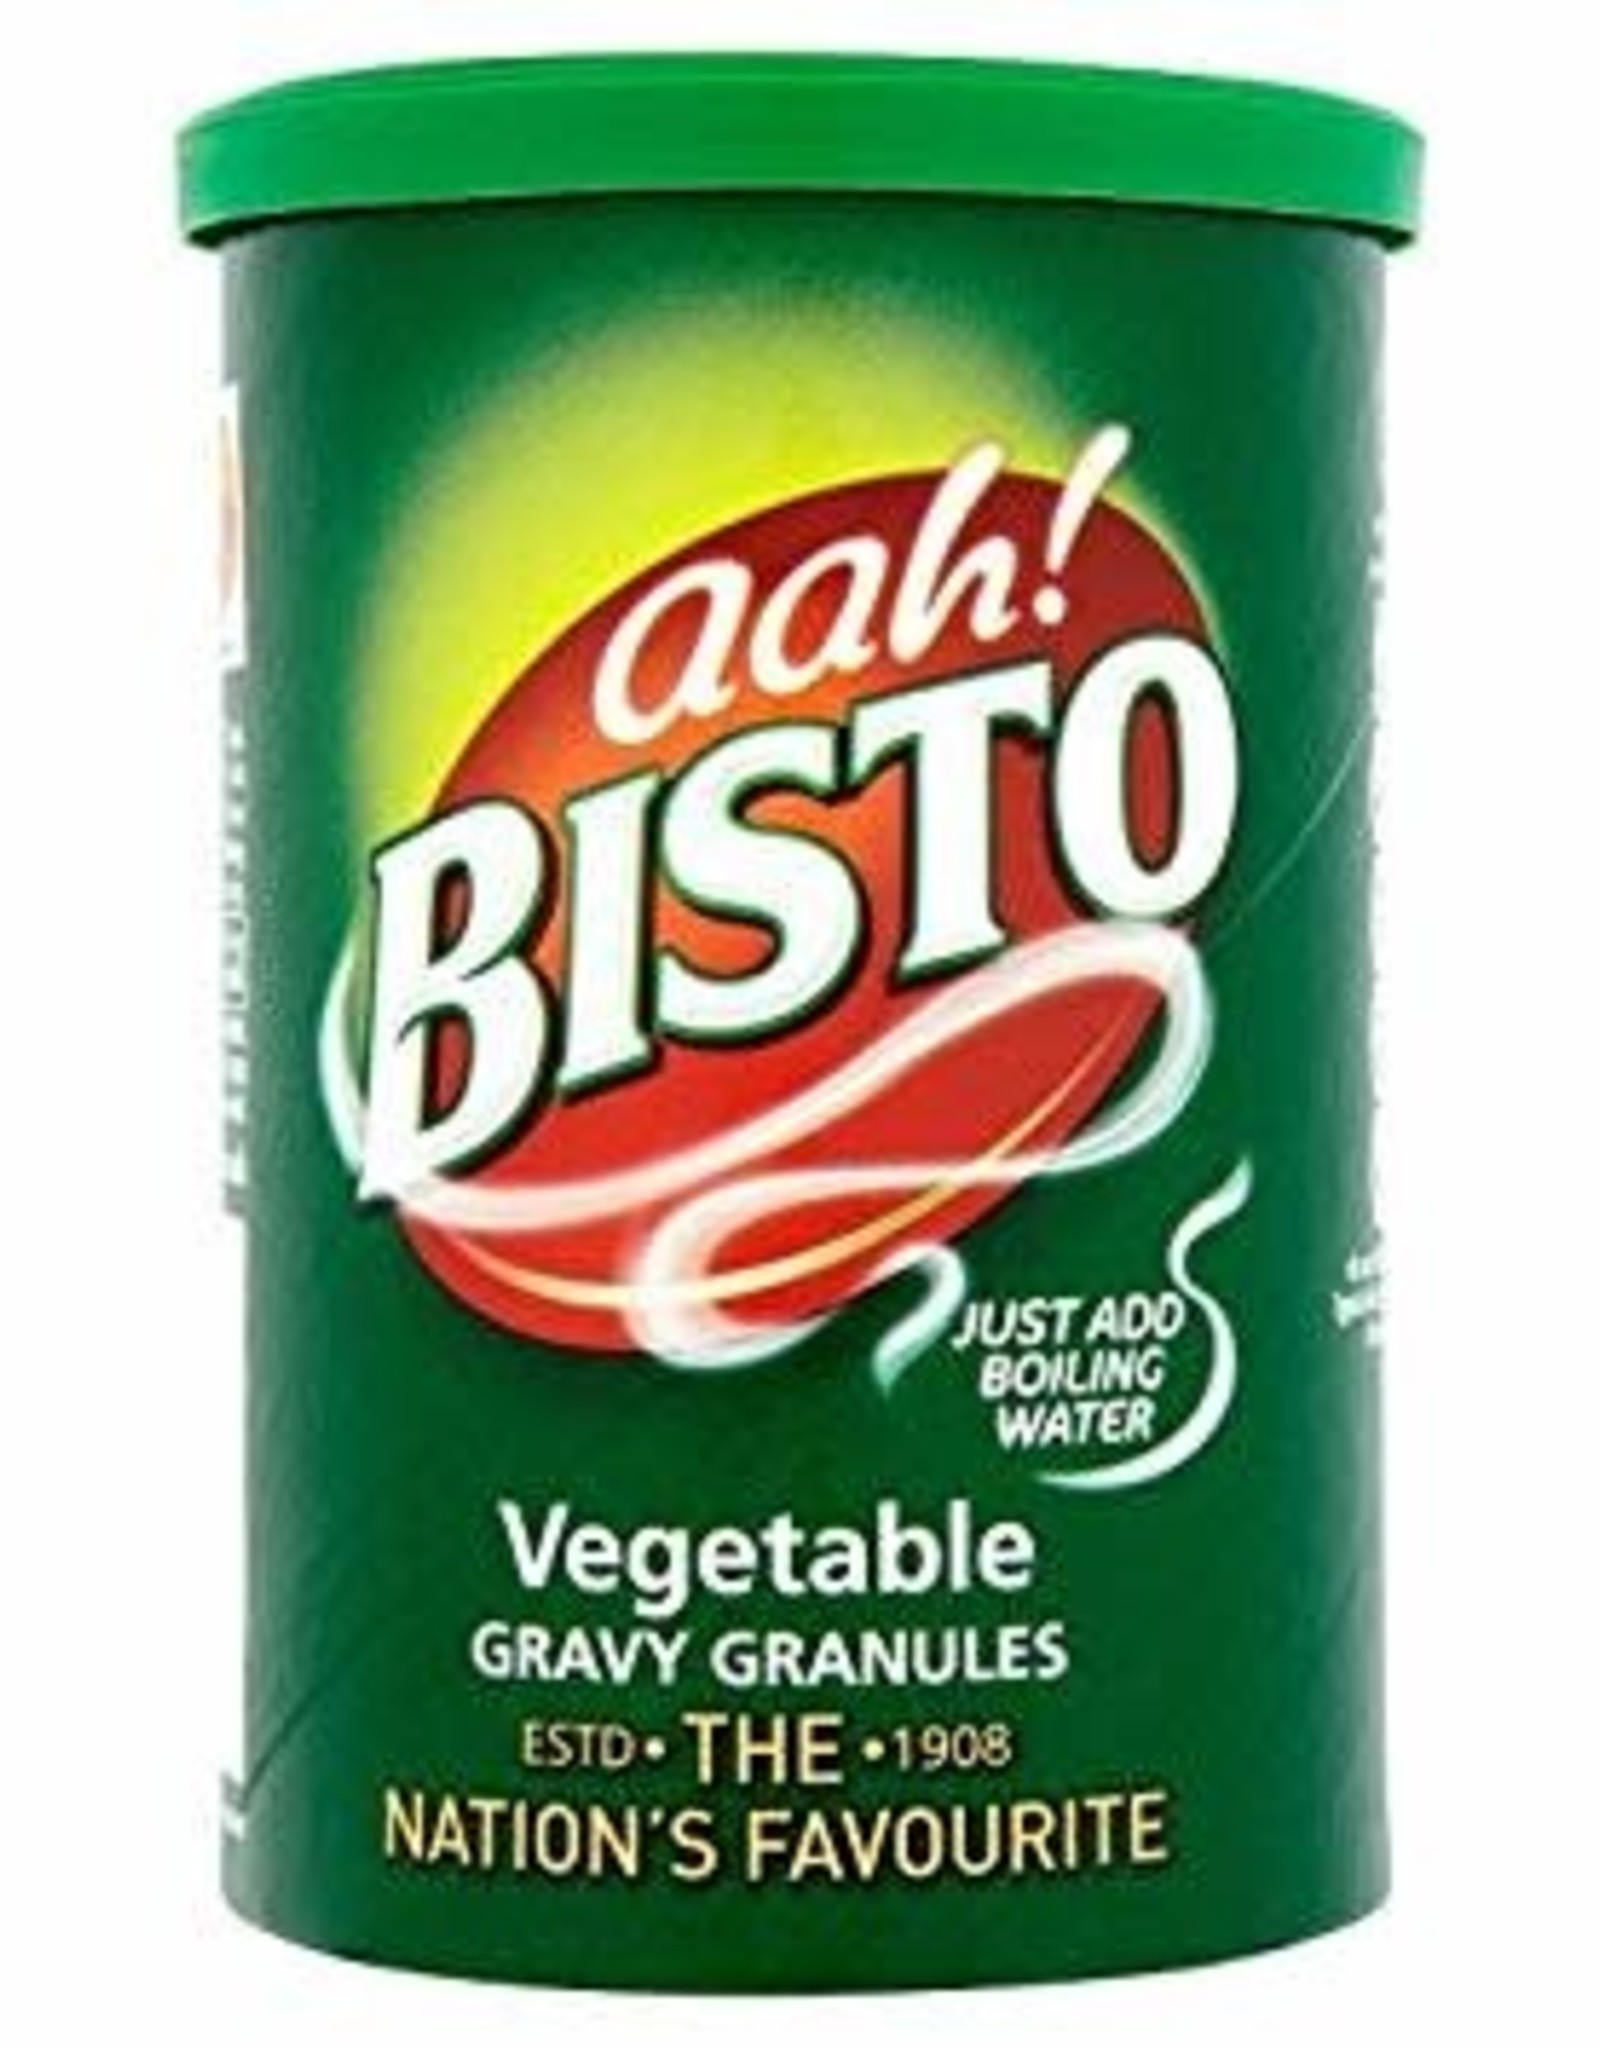 Bisto Vegetable Gravy Granules 170 g